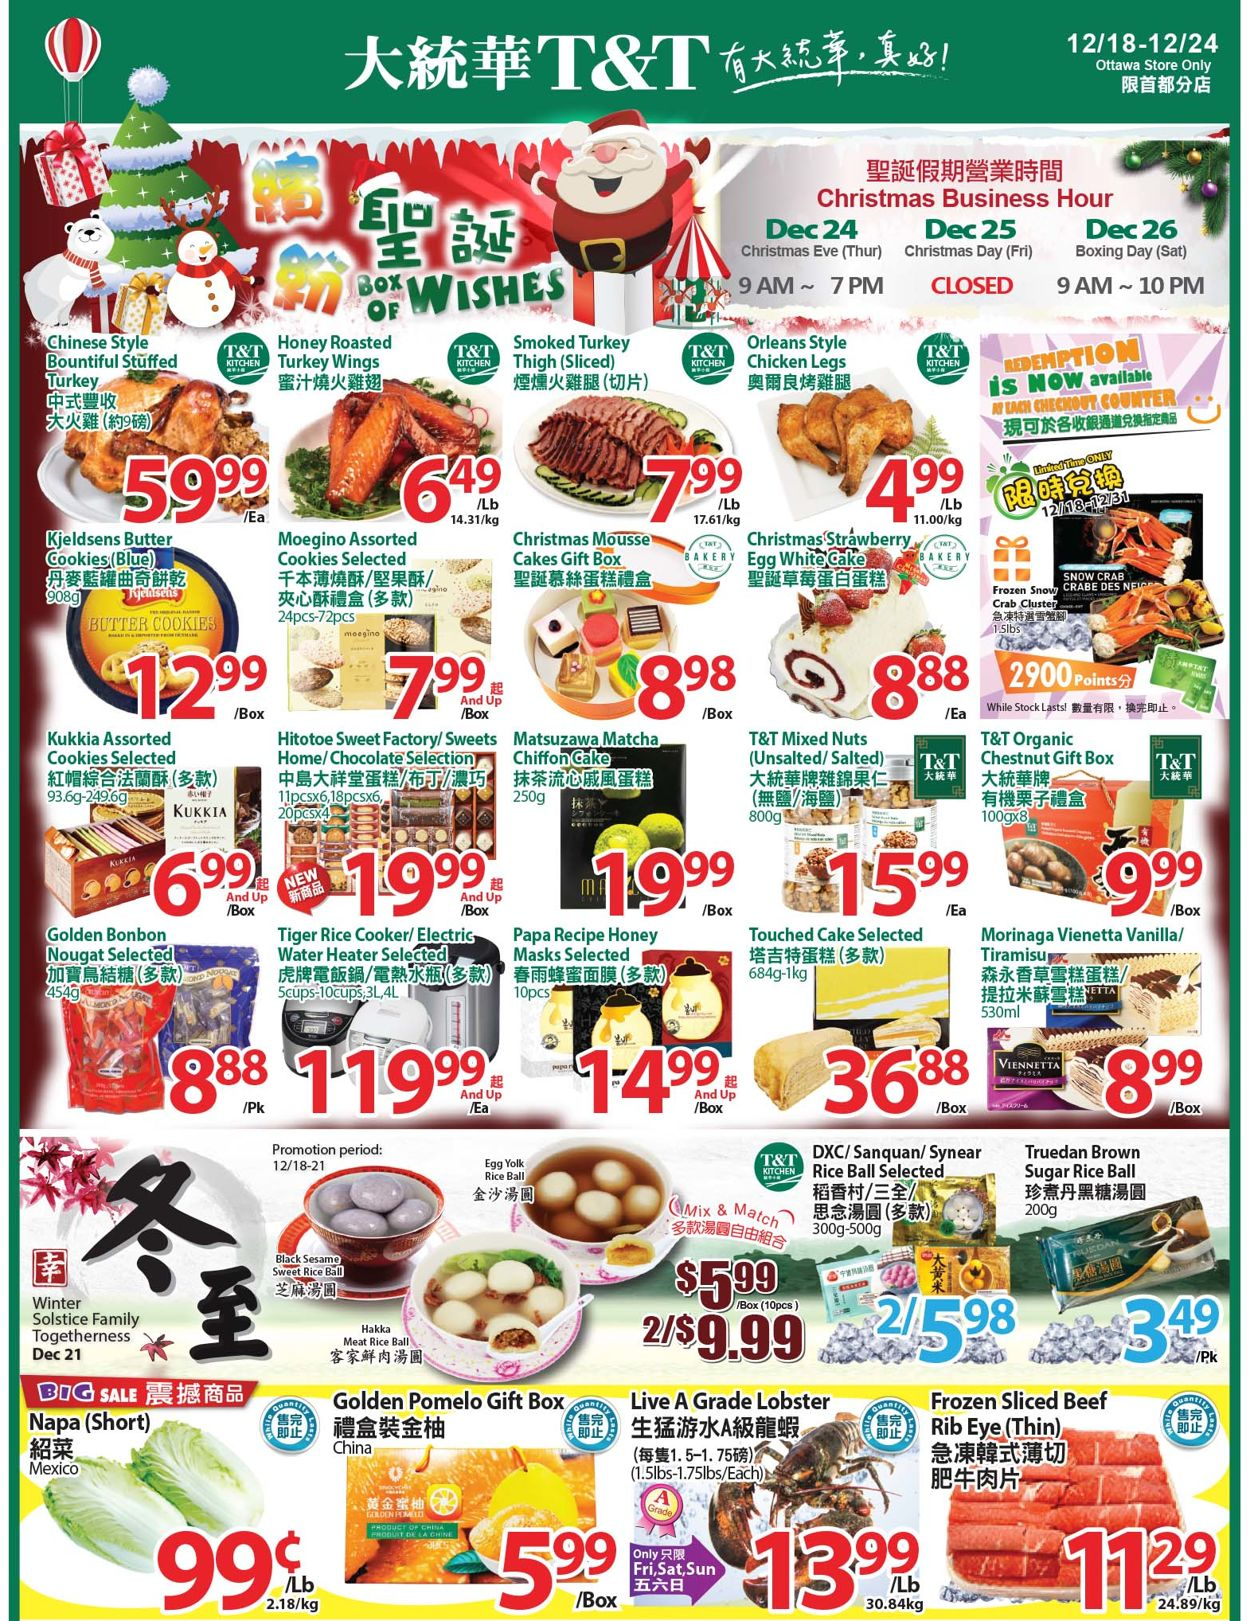 T&T Supermarket Christmas 2020 - Ottawa Flyer - 12/18-12/24/2020